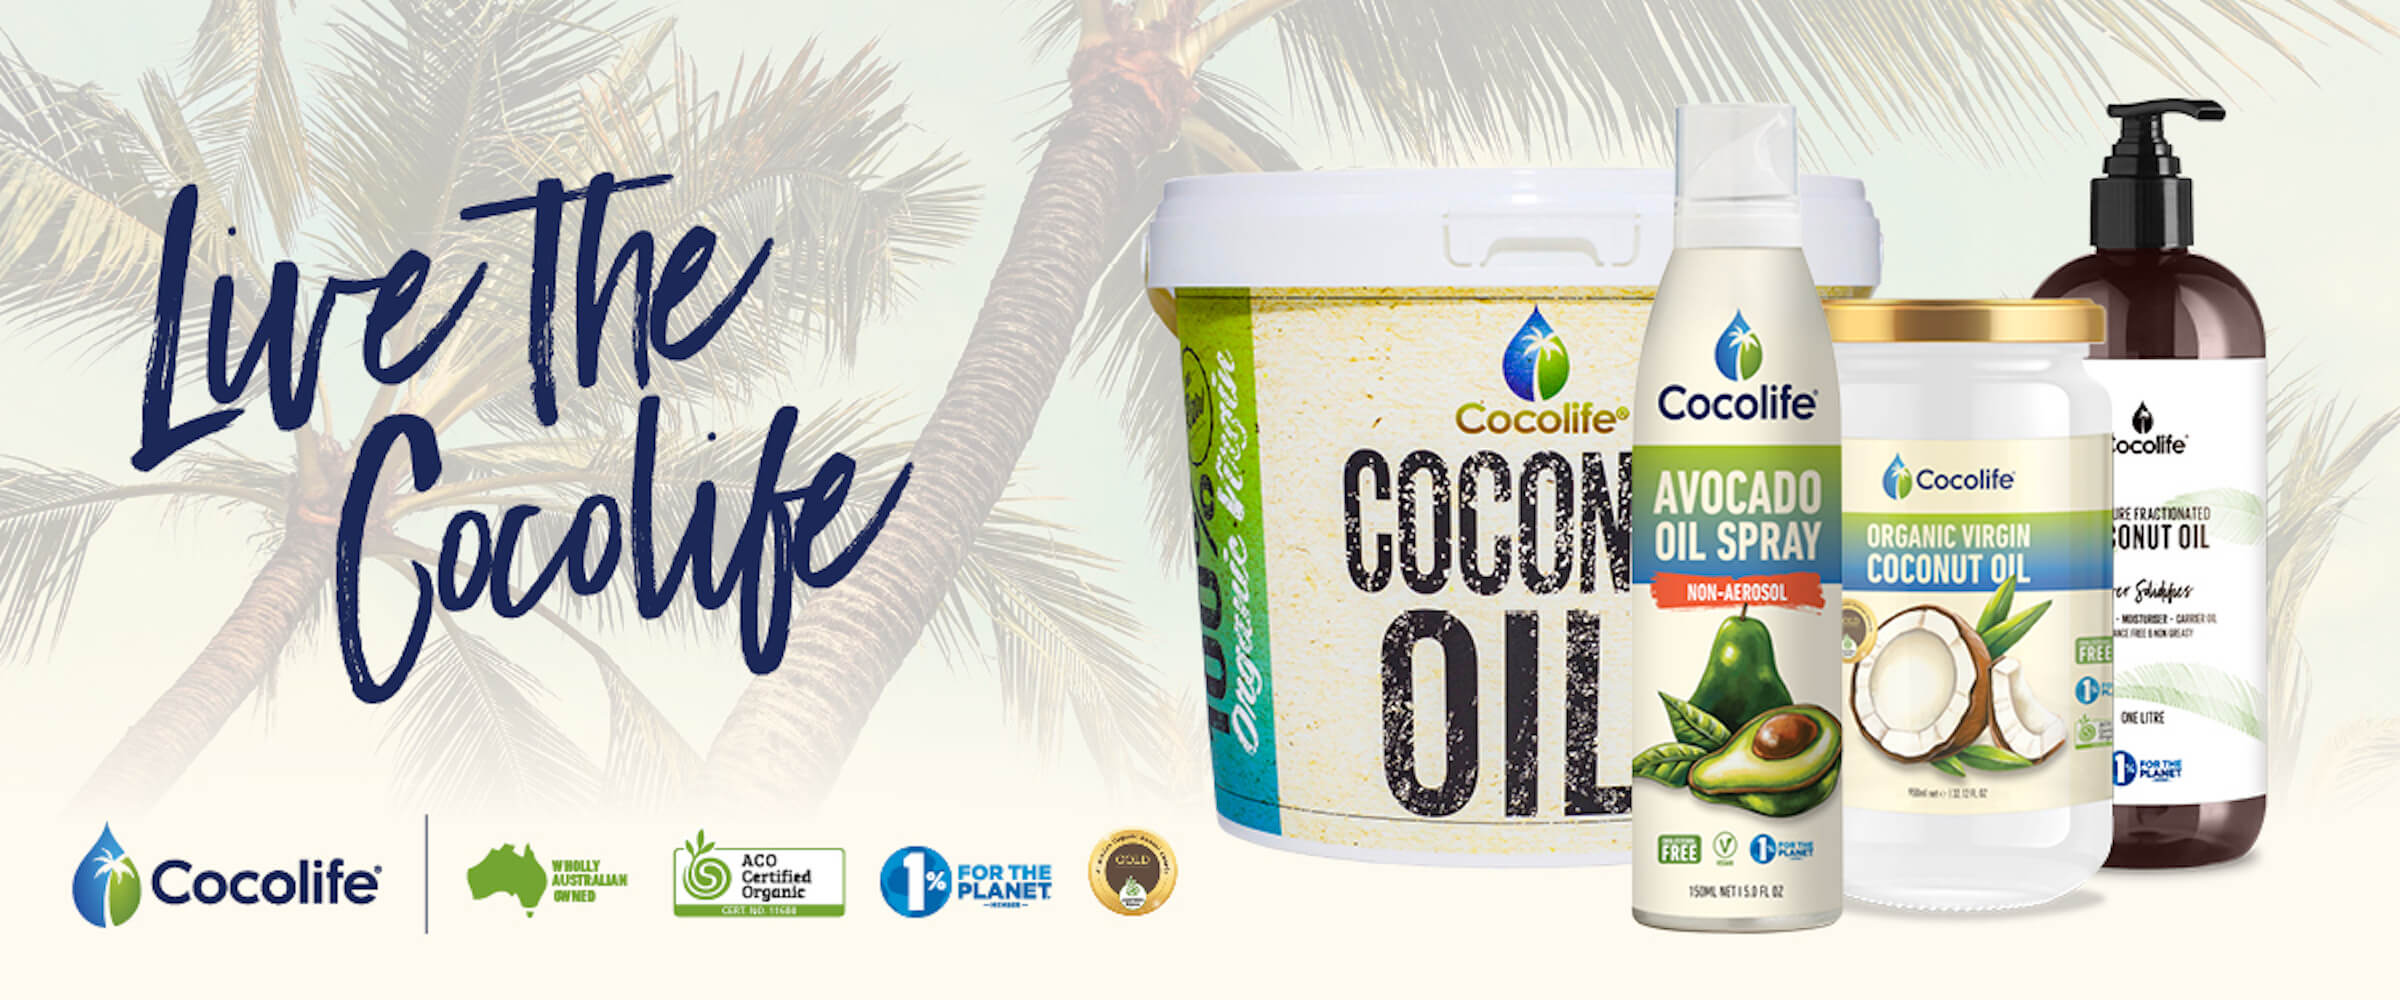 Cocolife Premium Vegan Organic Coconut Avocado Oil Keto Cooking